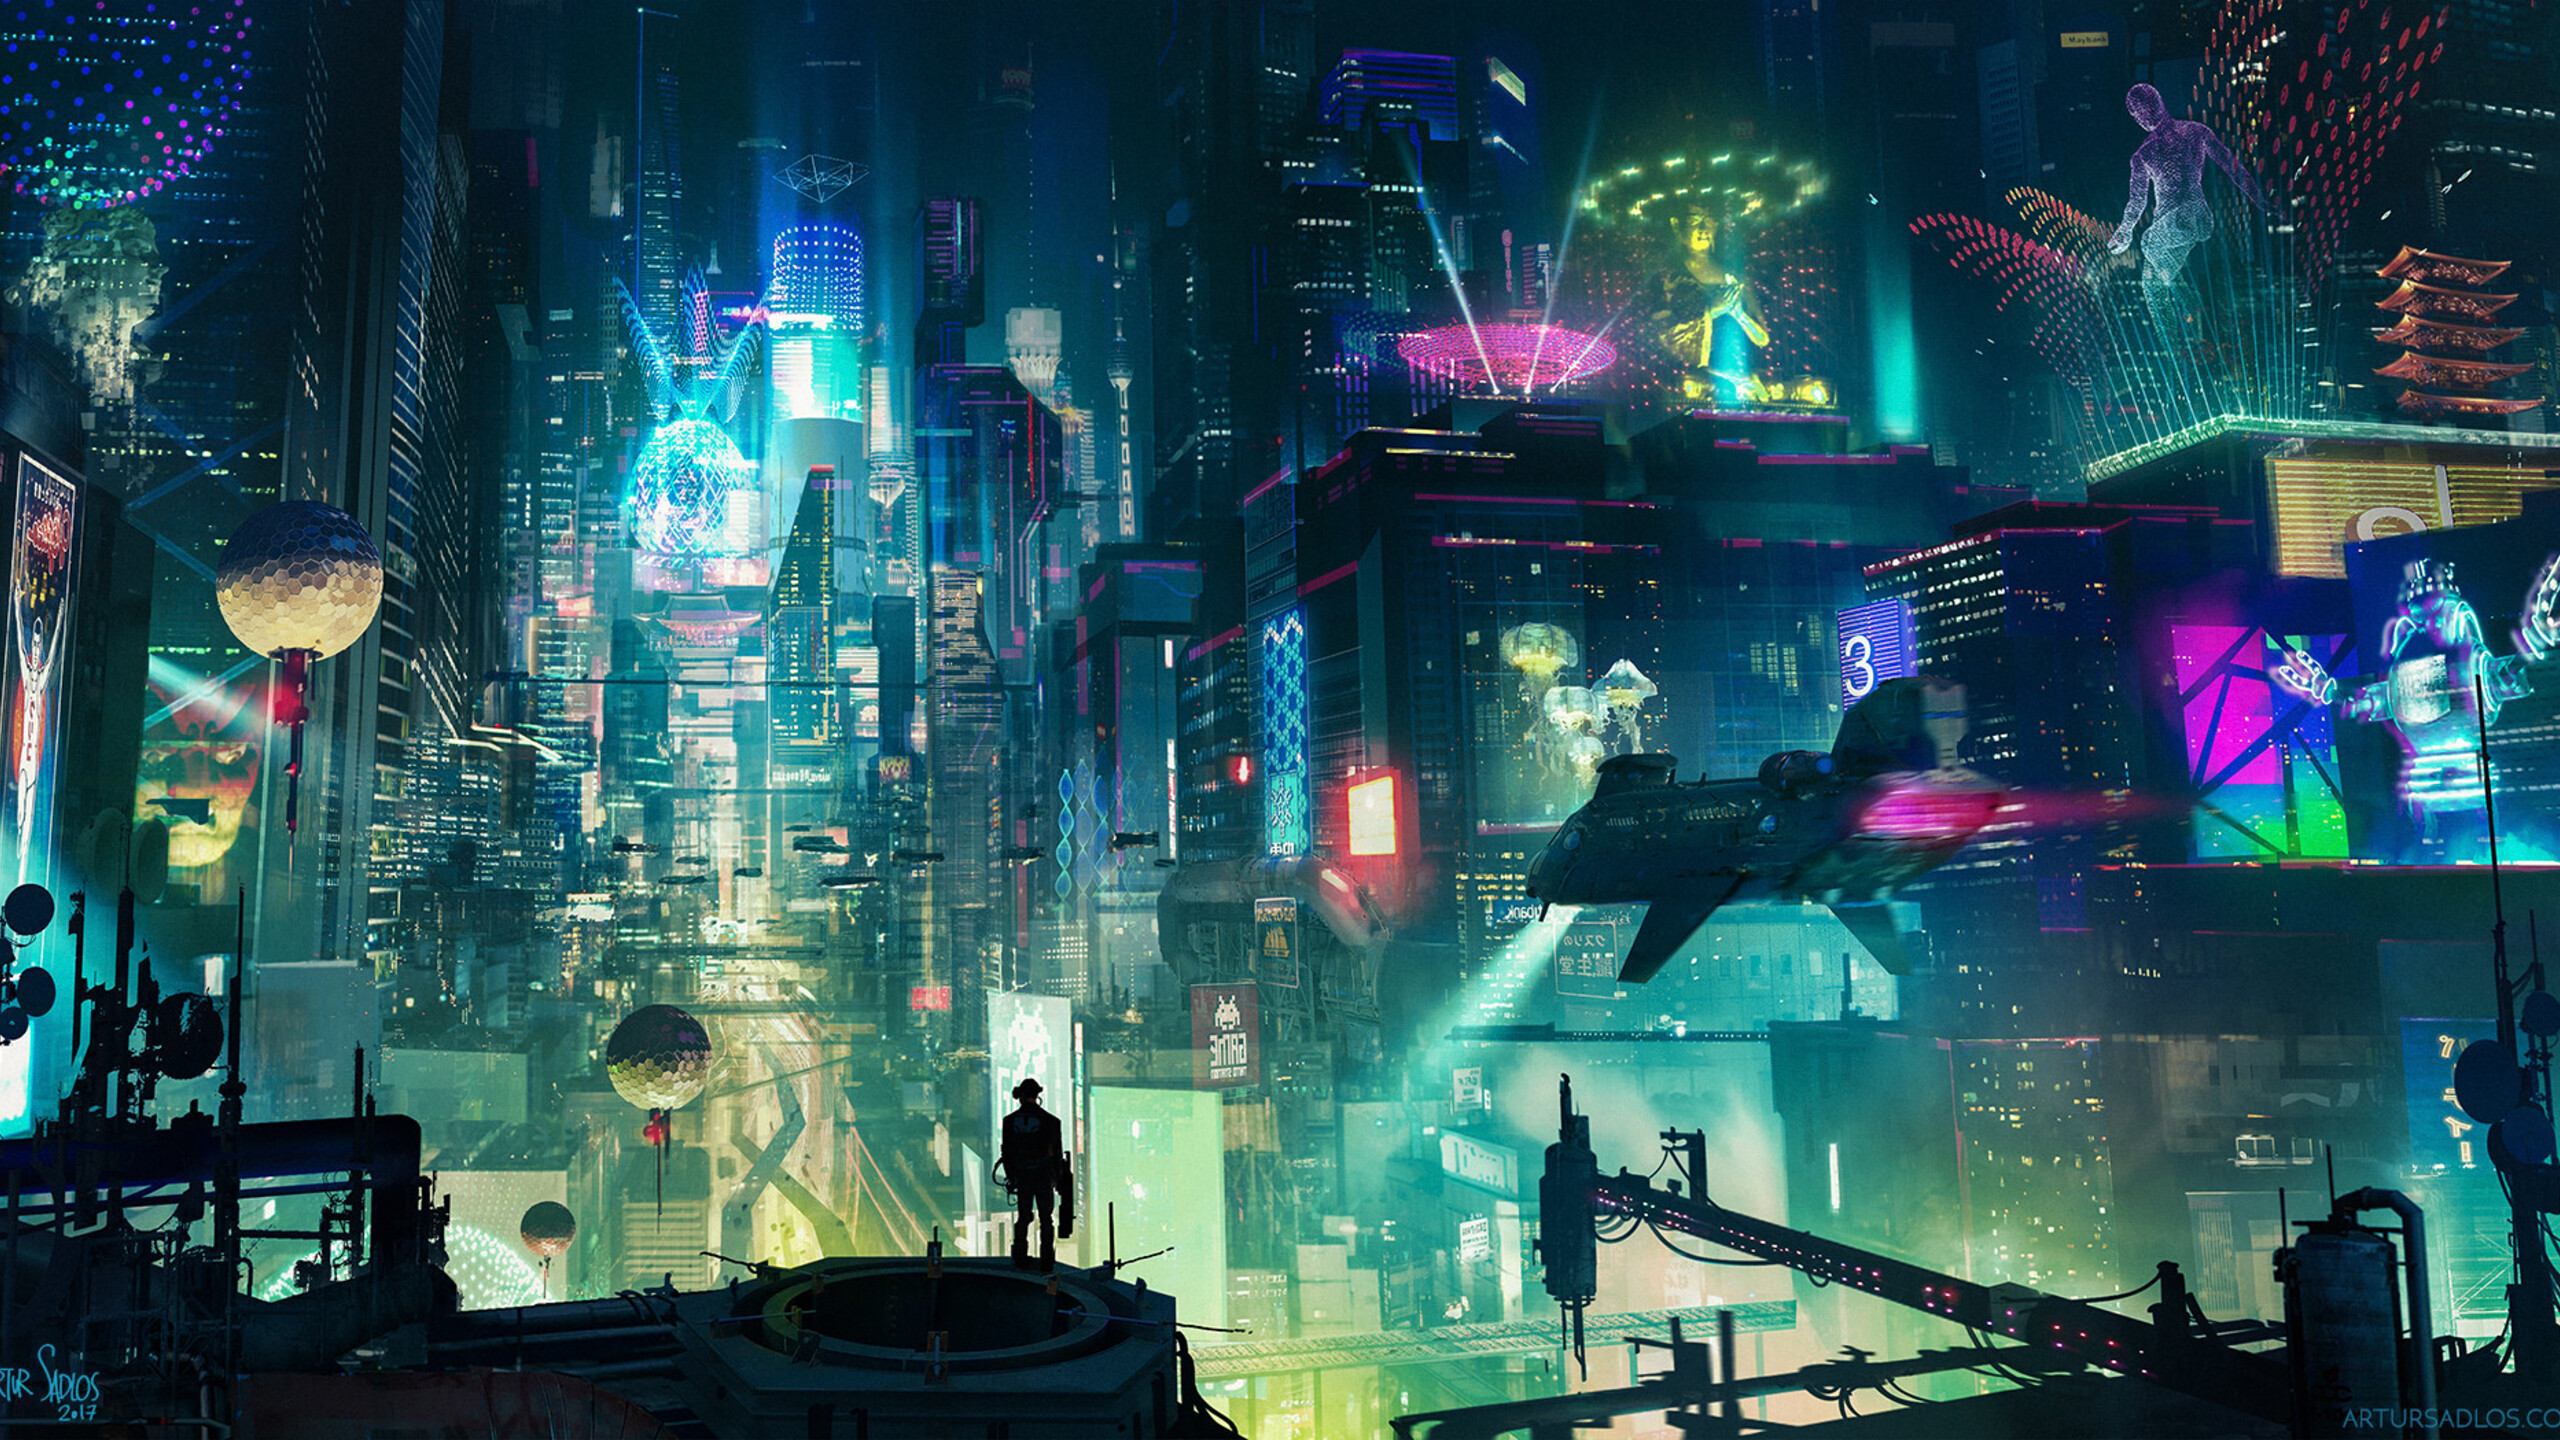 2560x1440 Cyberpunk City 1440p Resolution Hd 4k Wallpapers Images Backgrounds Photos And Pictures